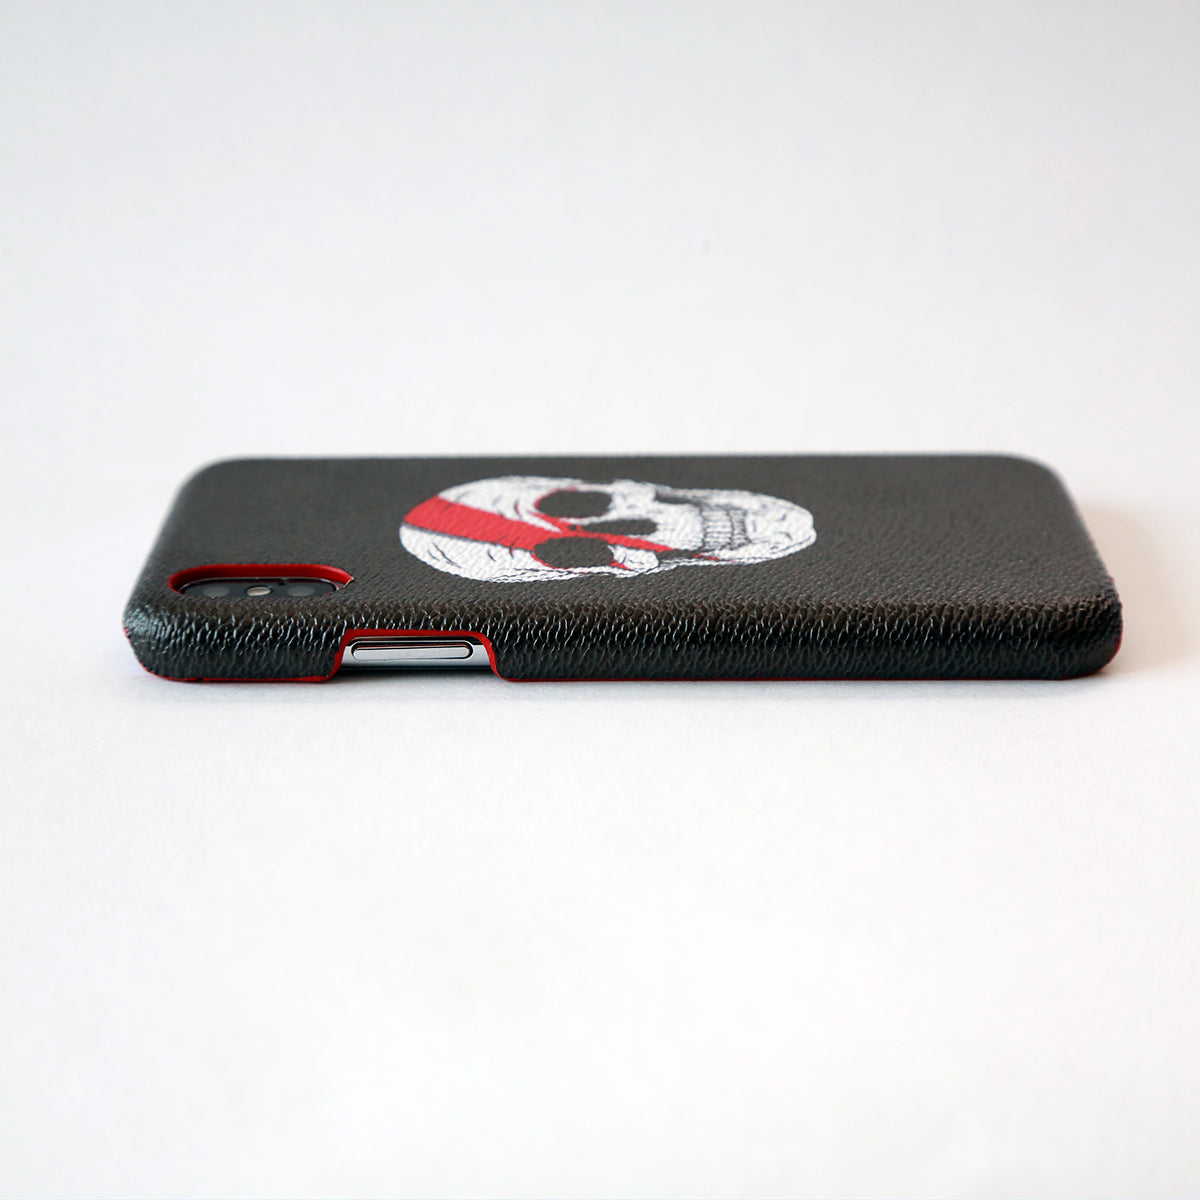 Struck Skull | iPhone Case by Workshop68